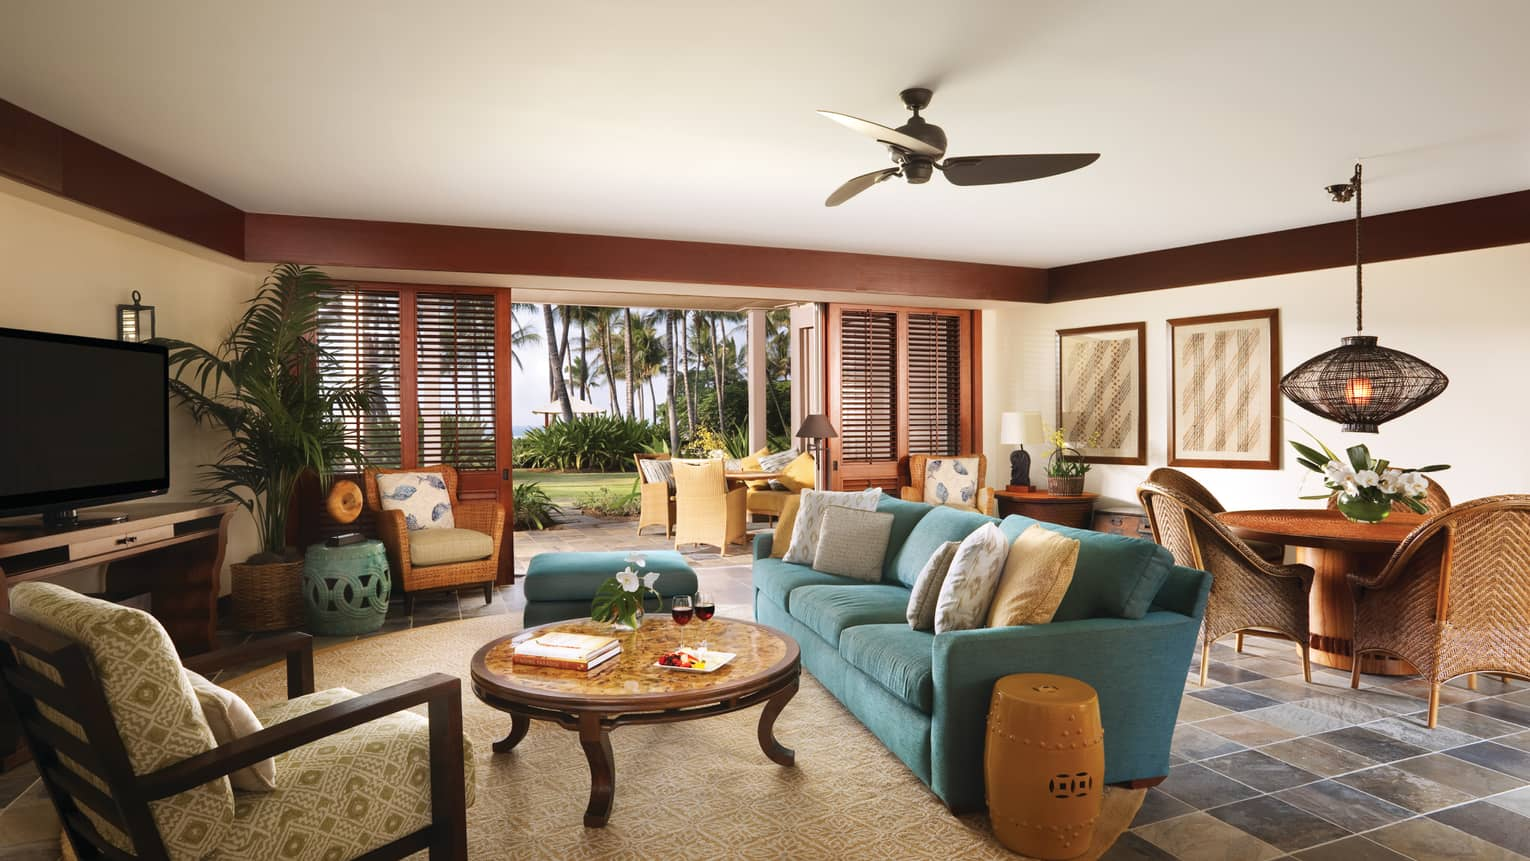 Wai'olu Suite seating area on round area rug, table by open wood patio shutters